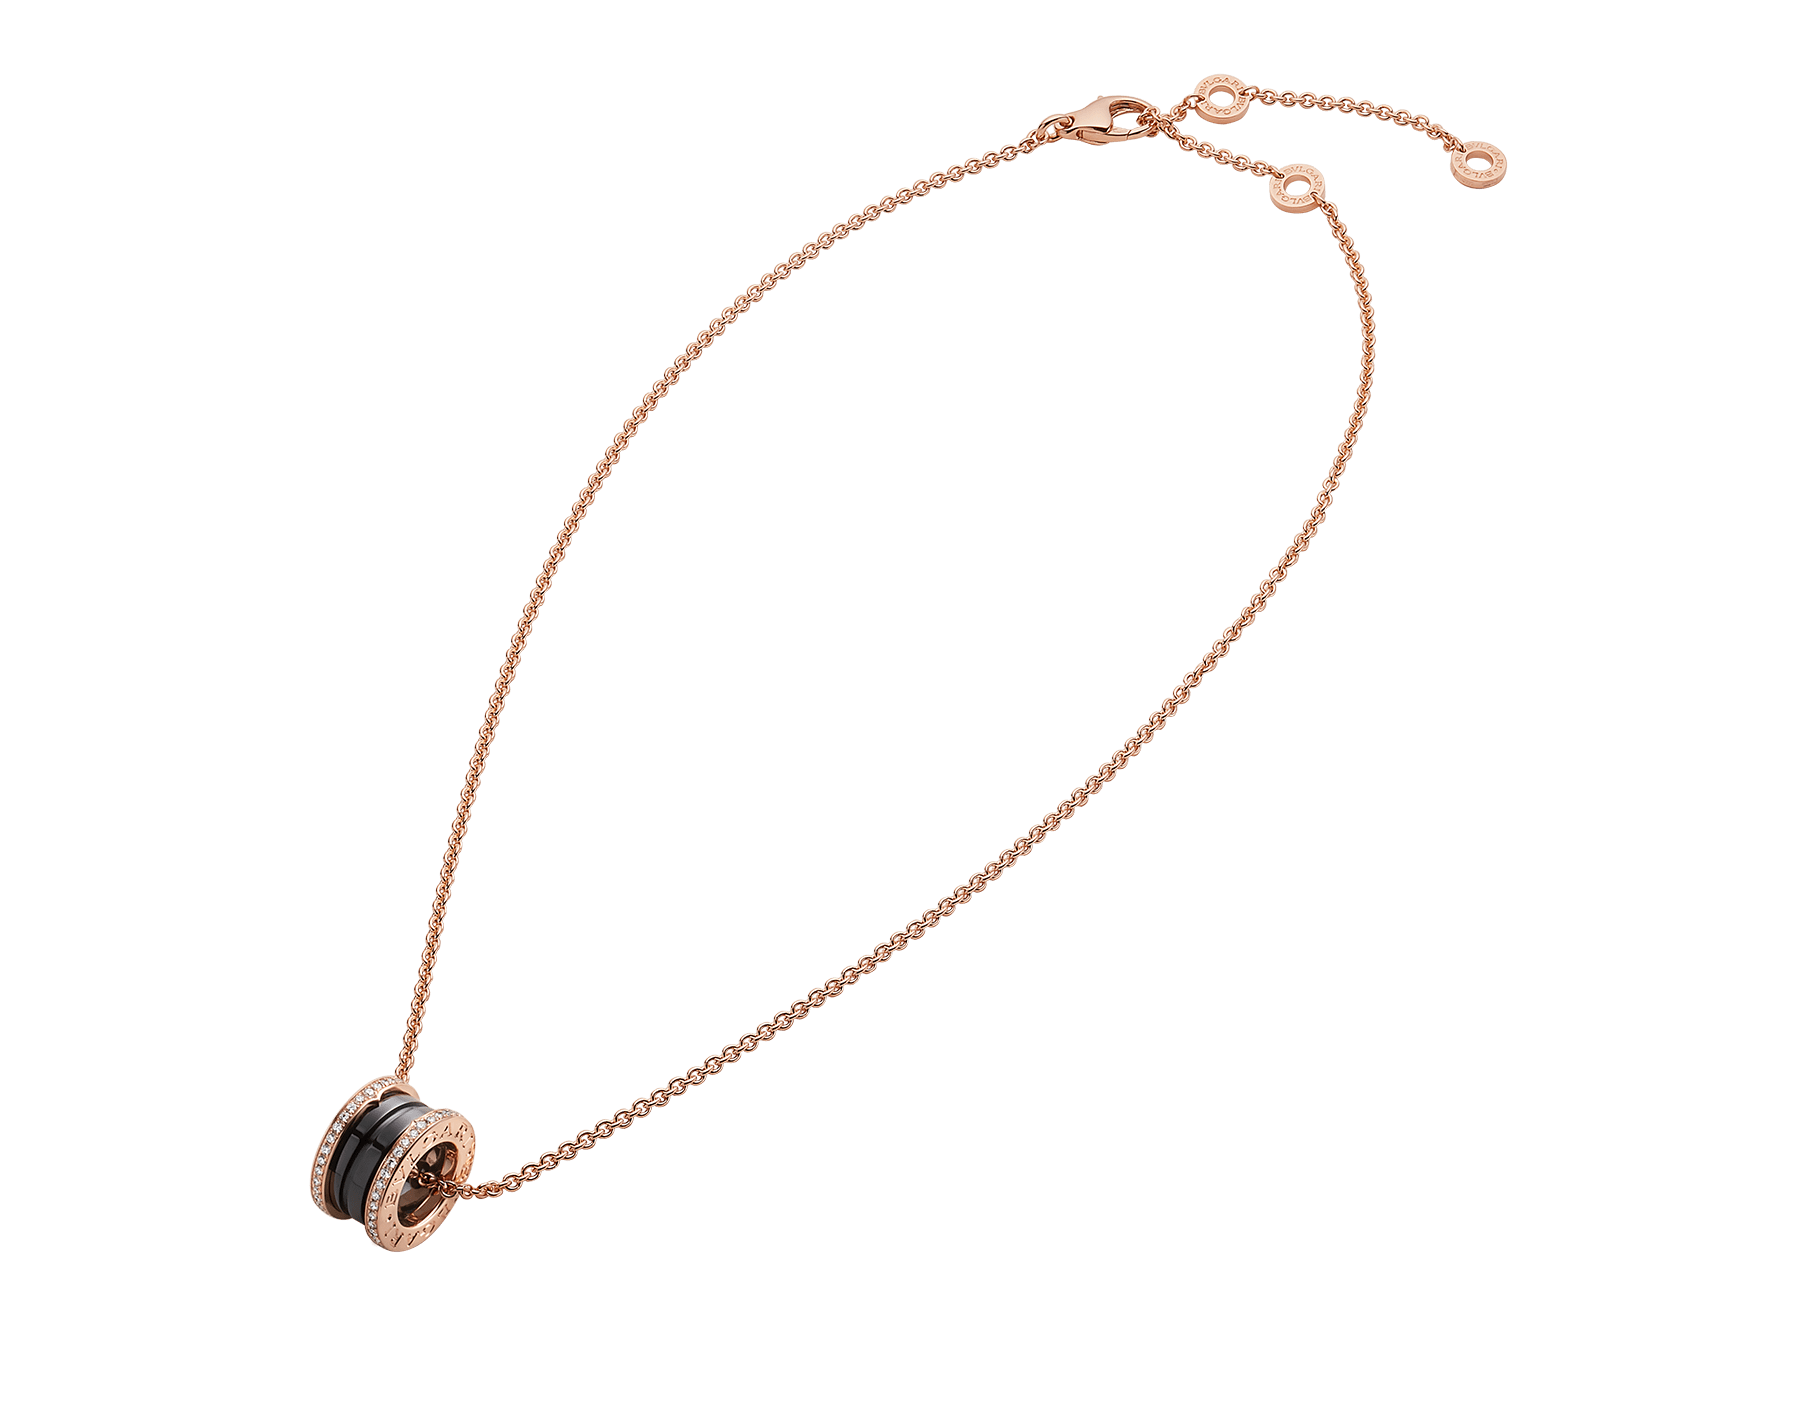 B.zero1 necklace with 18 kt rose gold chain and round pendant with two 18 kt rose gold loops set with pavé diamonds on the edges and a black ceramic spiral. 350056 image 2